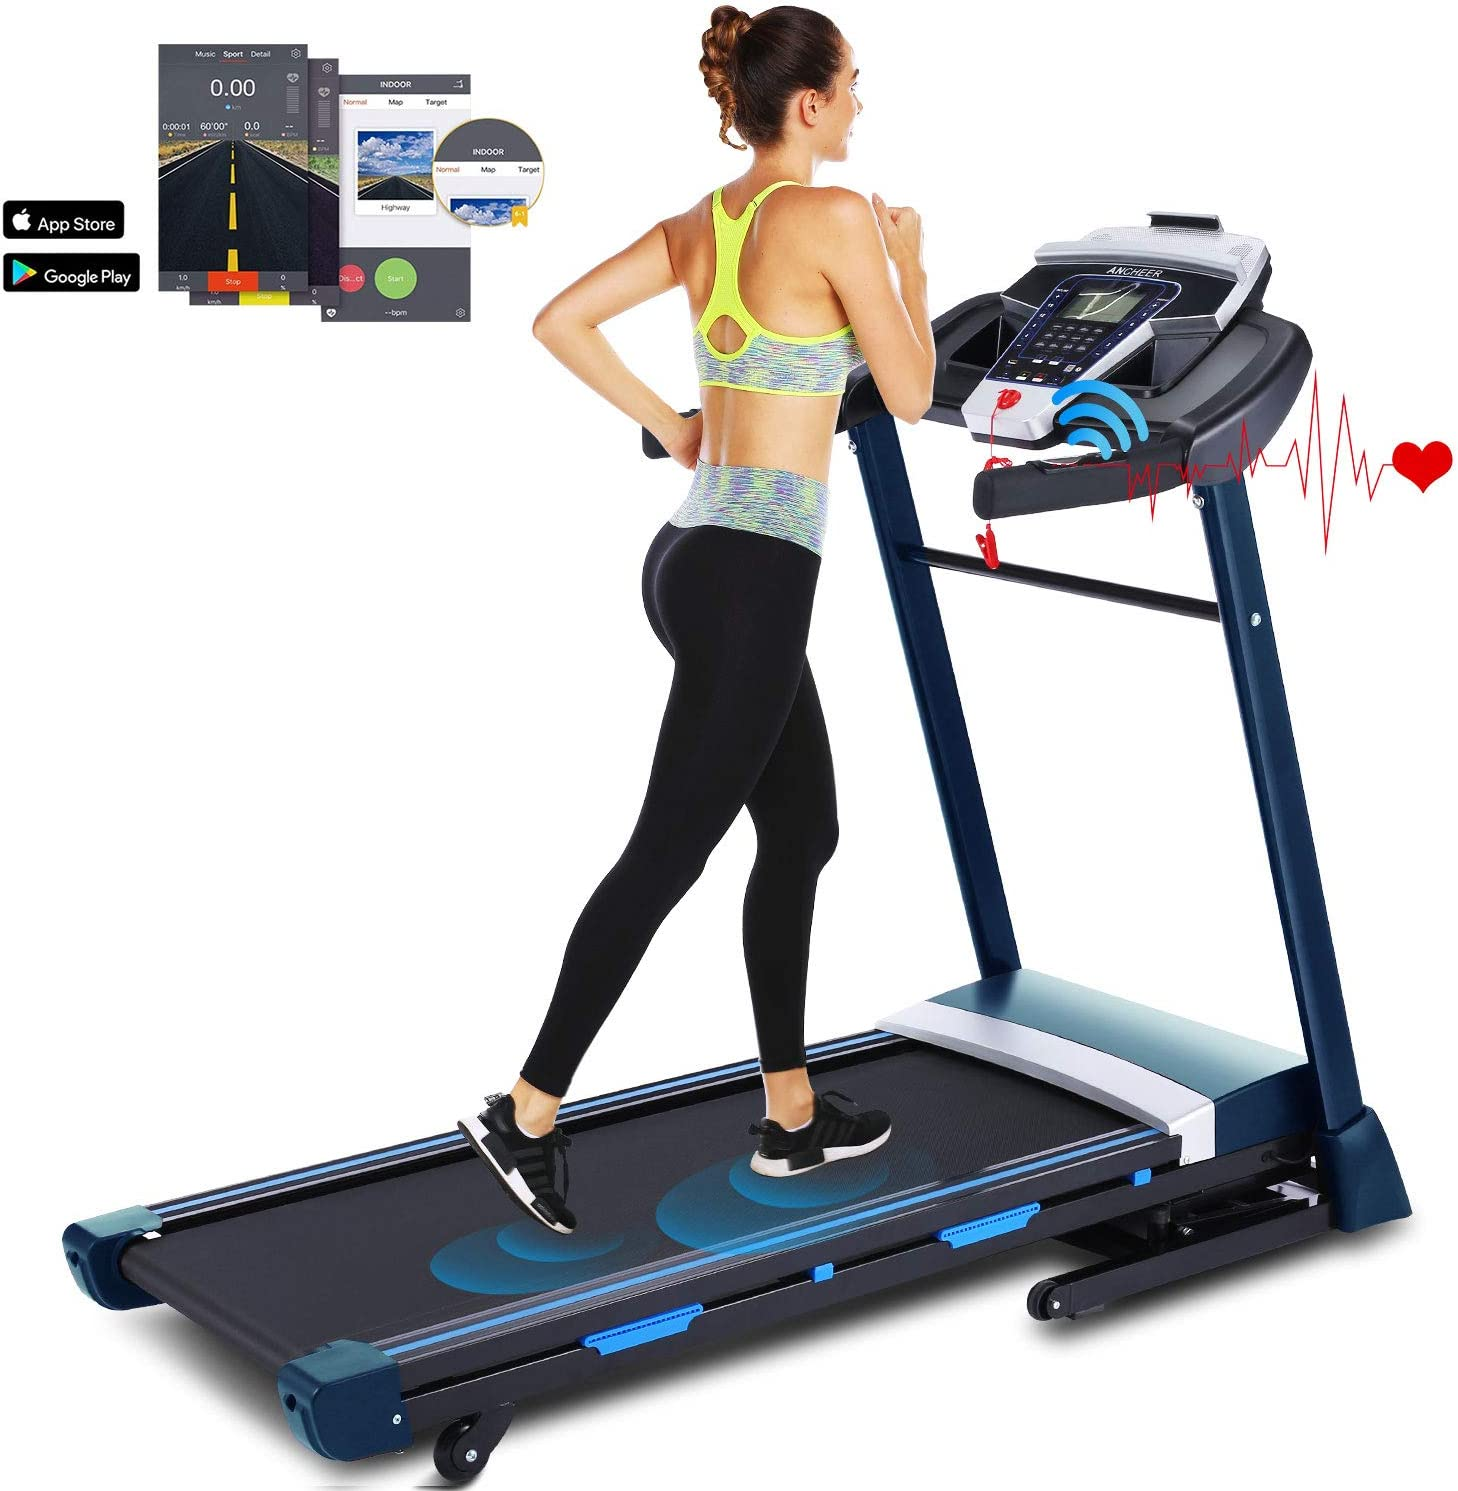 ANCHEER 3.25HP Folding Treadmill, Electric Automatic Incline Treadmill, Walking Jogging Running Machine with APP Control for Home Gym Cardio Fitness Exercise Trainer